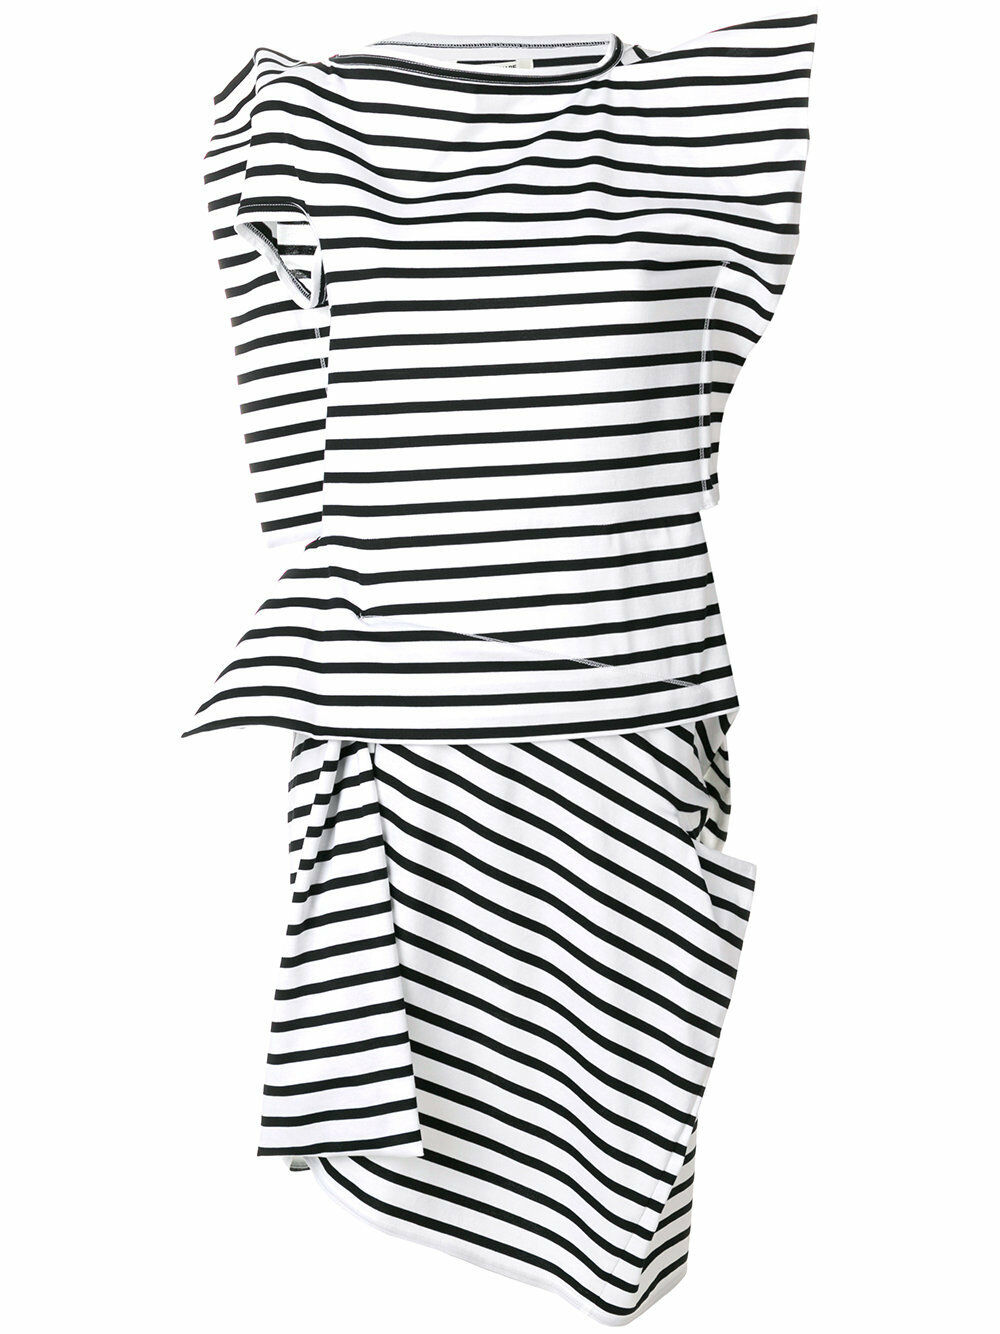 Junya Watanabe Comme Des Garçons Garçons Garçons Asymmetric Sculptural Spiky Striped Dress 2 3b1e22